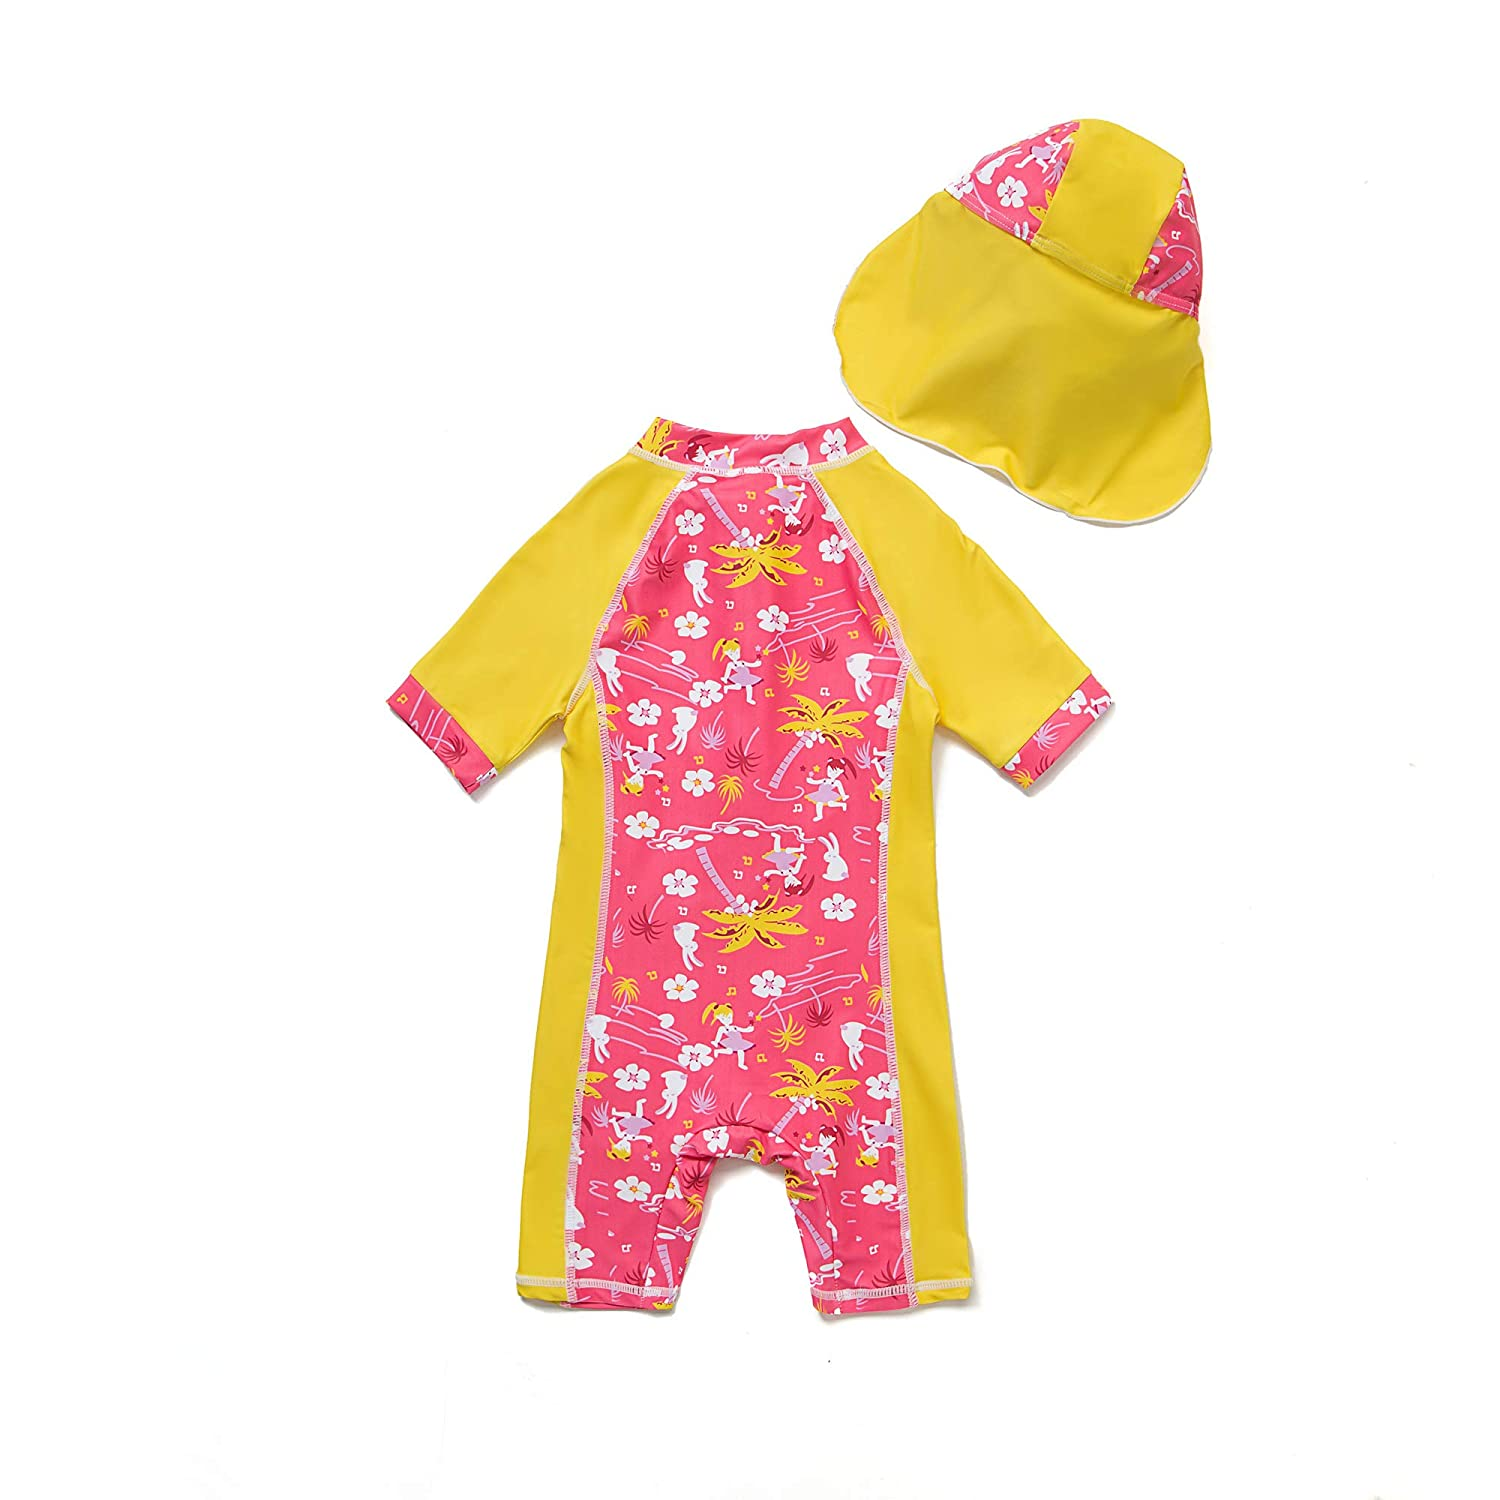 Baby Girls Sunsuit UPF 50 Mei Red Flowers,12-18Months Sun Protection One Pieces Short Sleeves Swimwear with Sun Hat